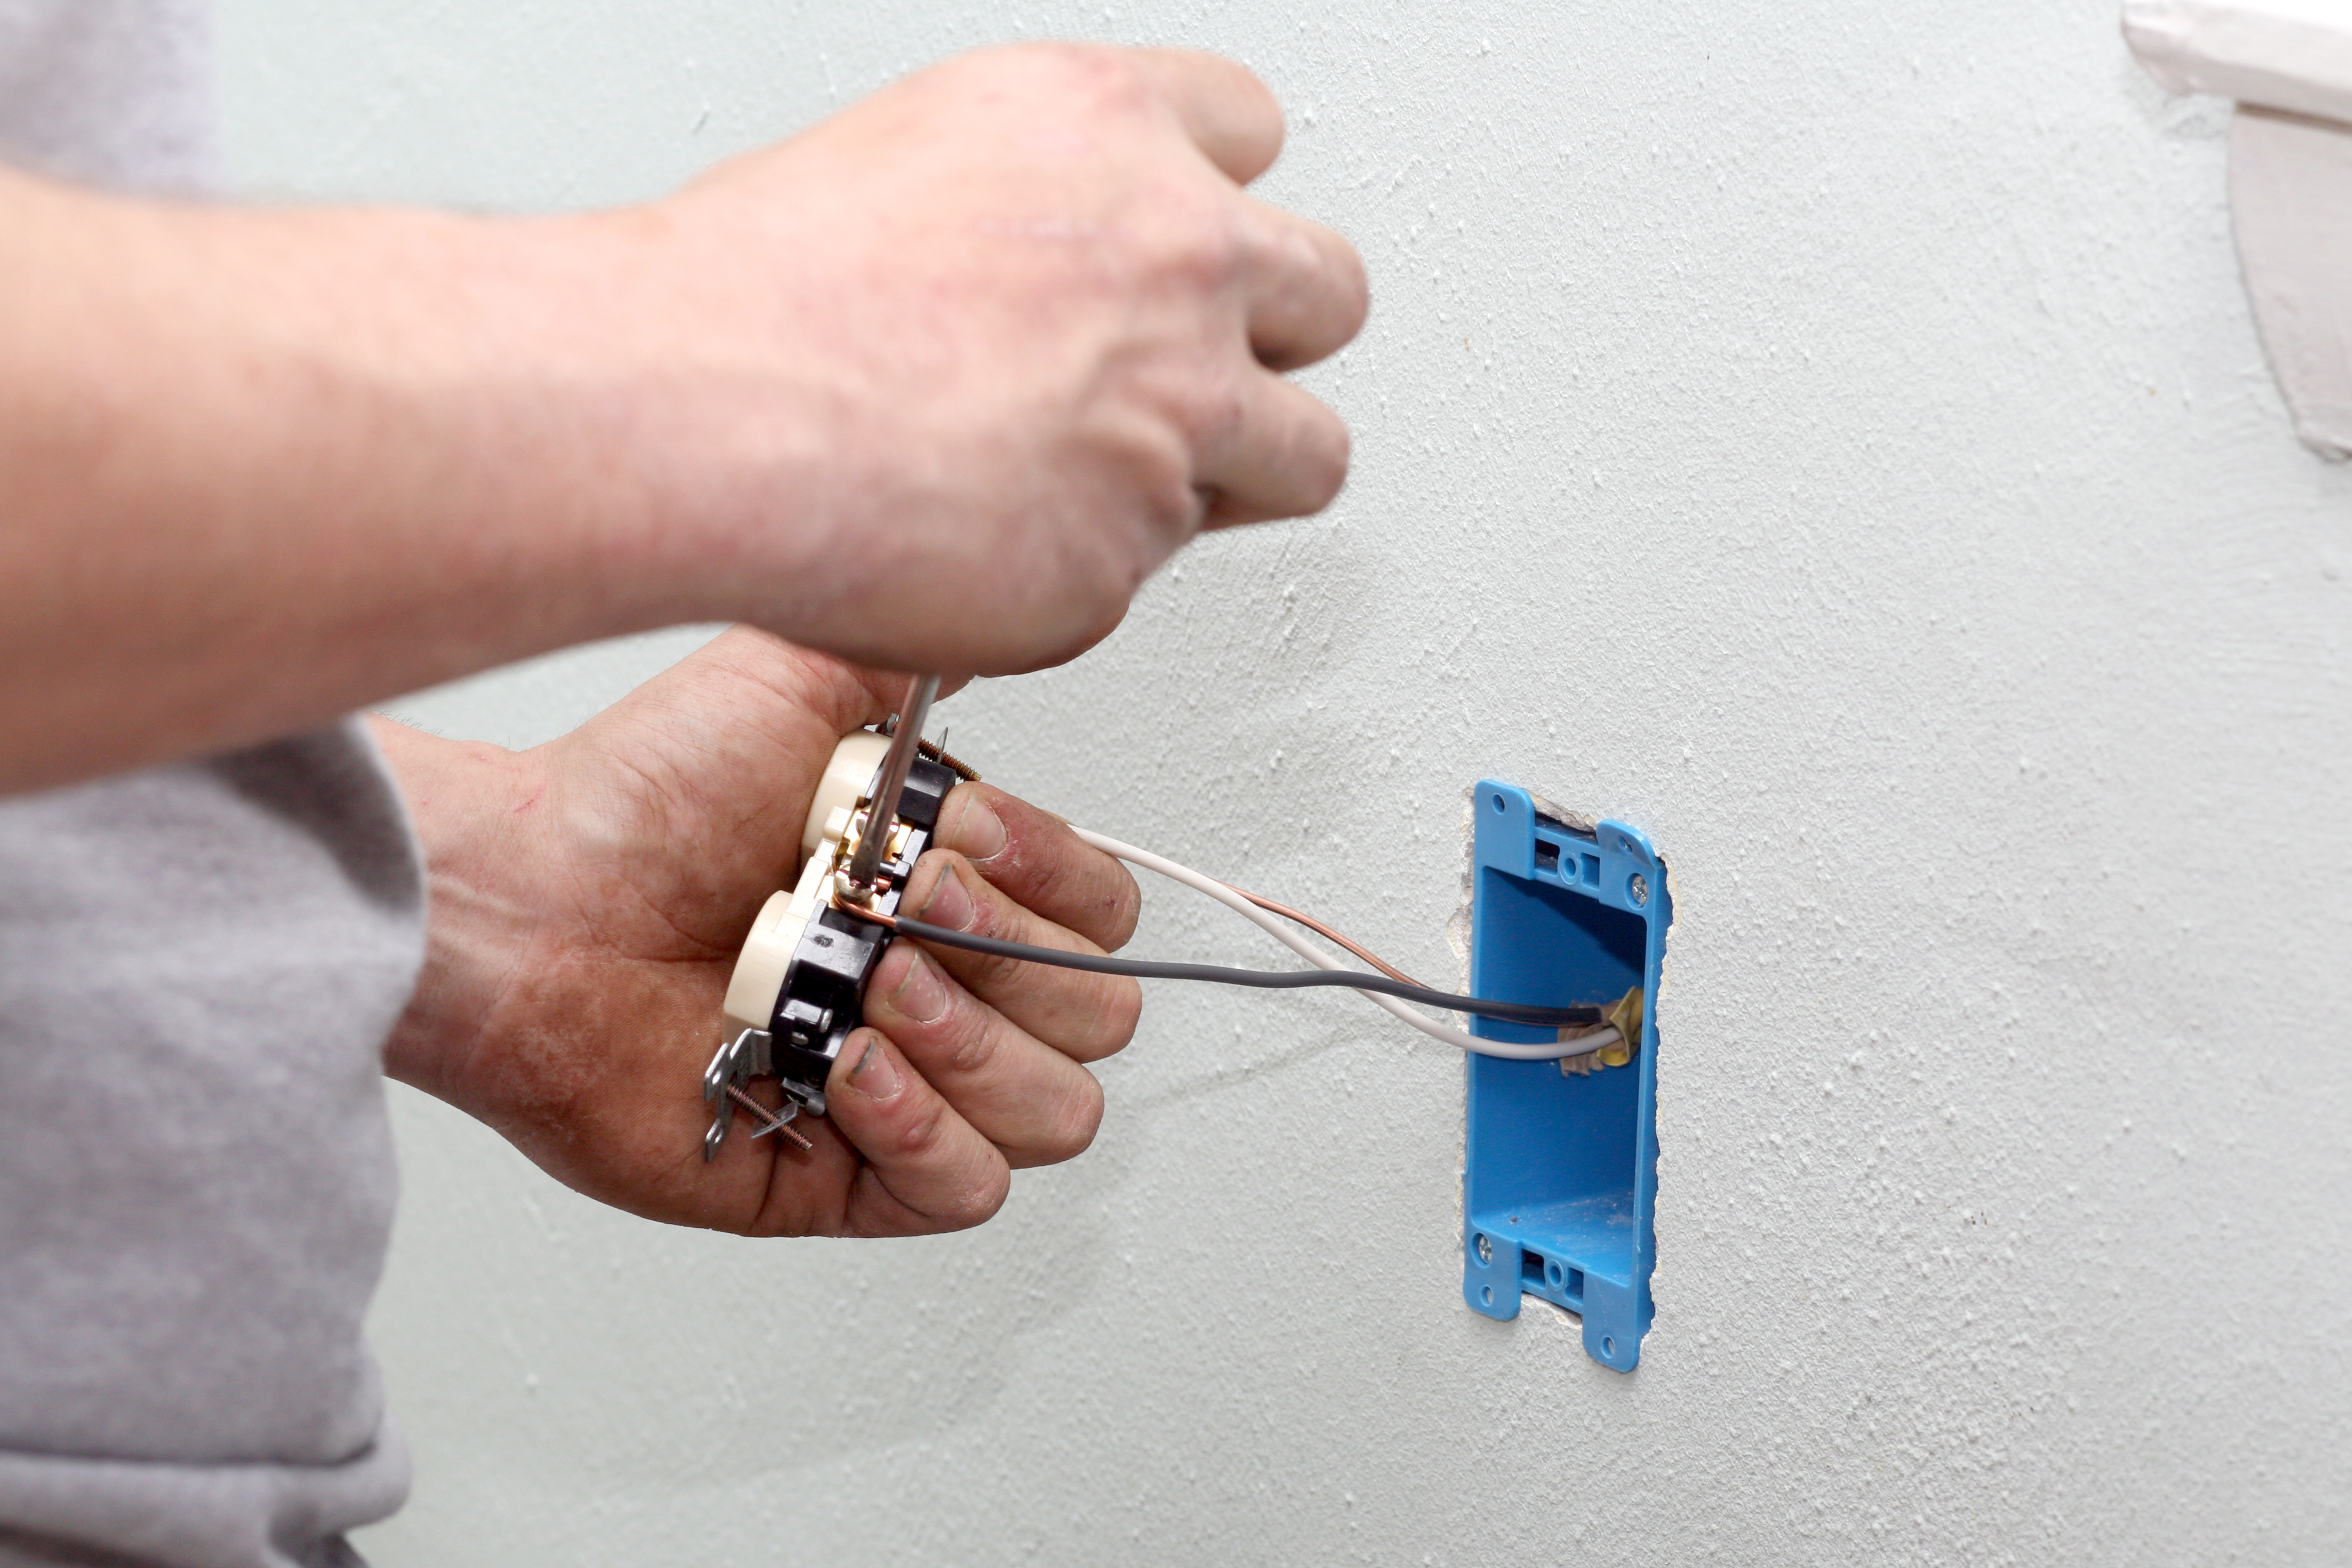 Electrical outlet being installed by a electrician.